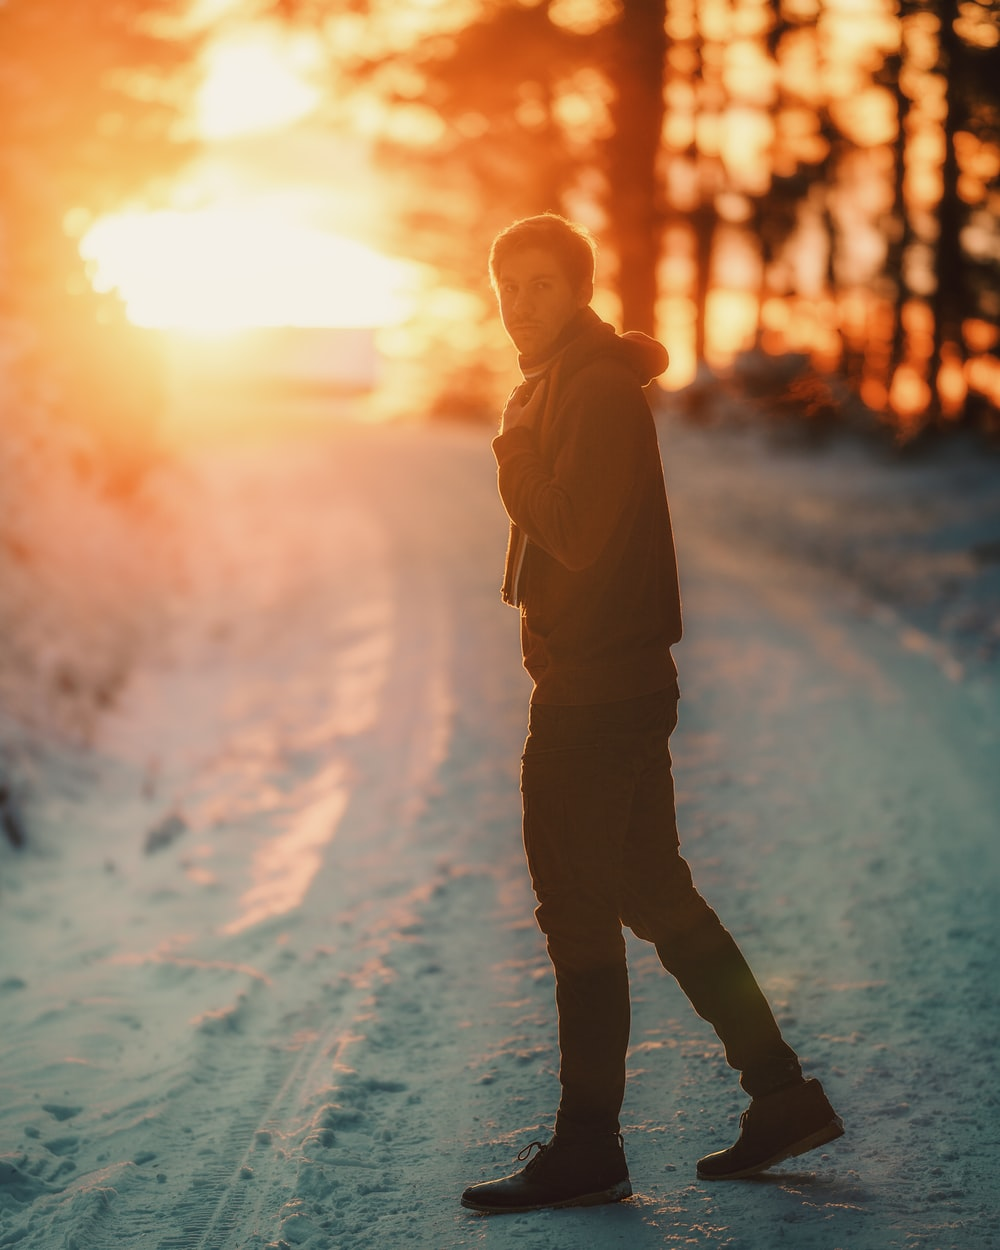 man in brown jacket standing on snow covered ground during daytime